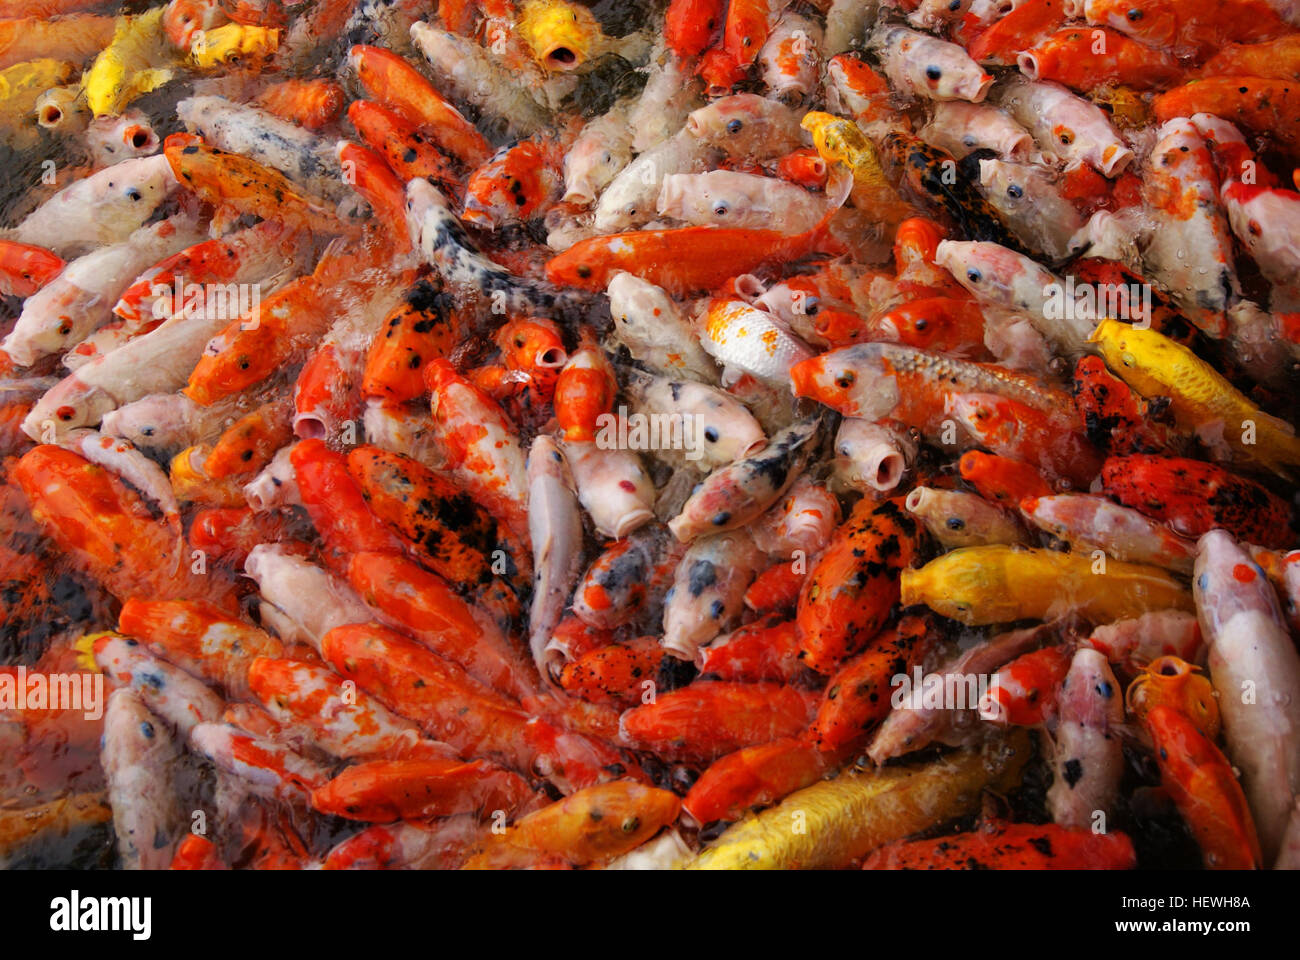 Koi fish Facts Koi fish is domesticated version of common carp. This ...